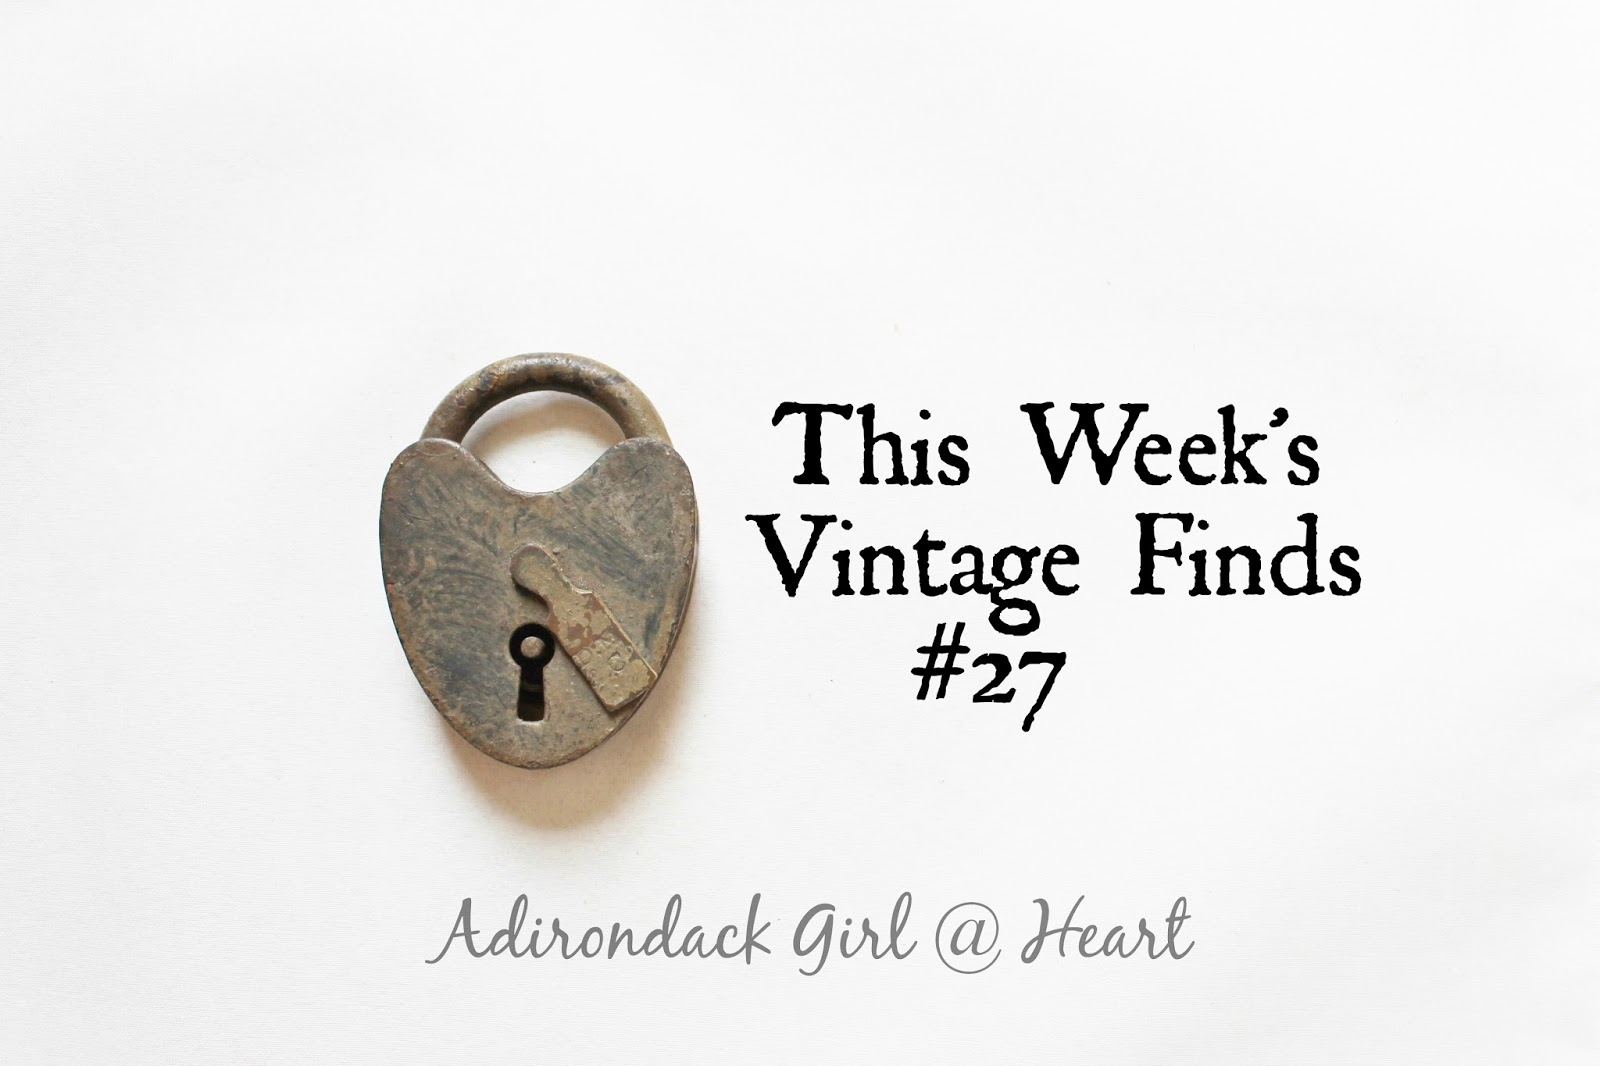 This Week's Vintage Finds #27